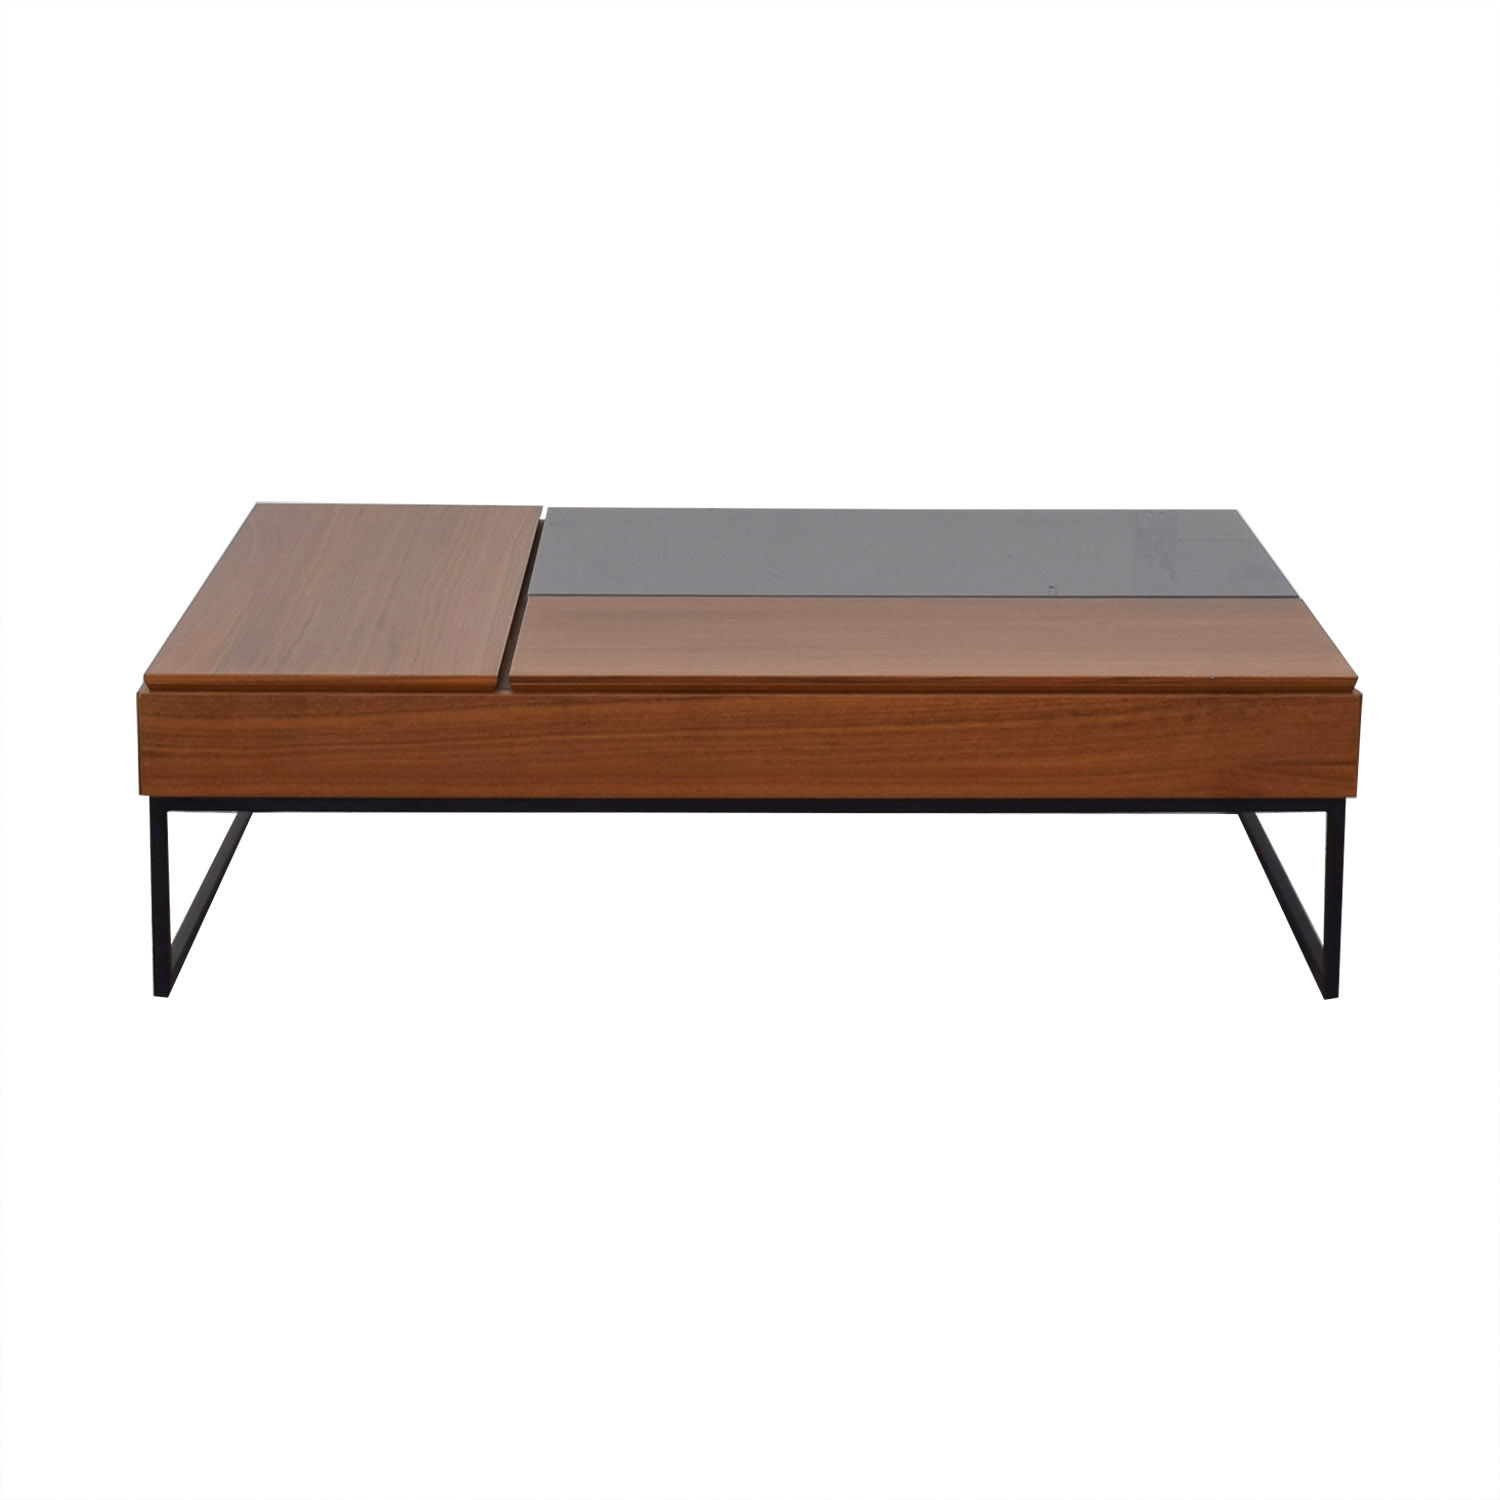 BoConcept BoConcept Chiva Functional Coffee Table with Storage dimensions